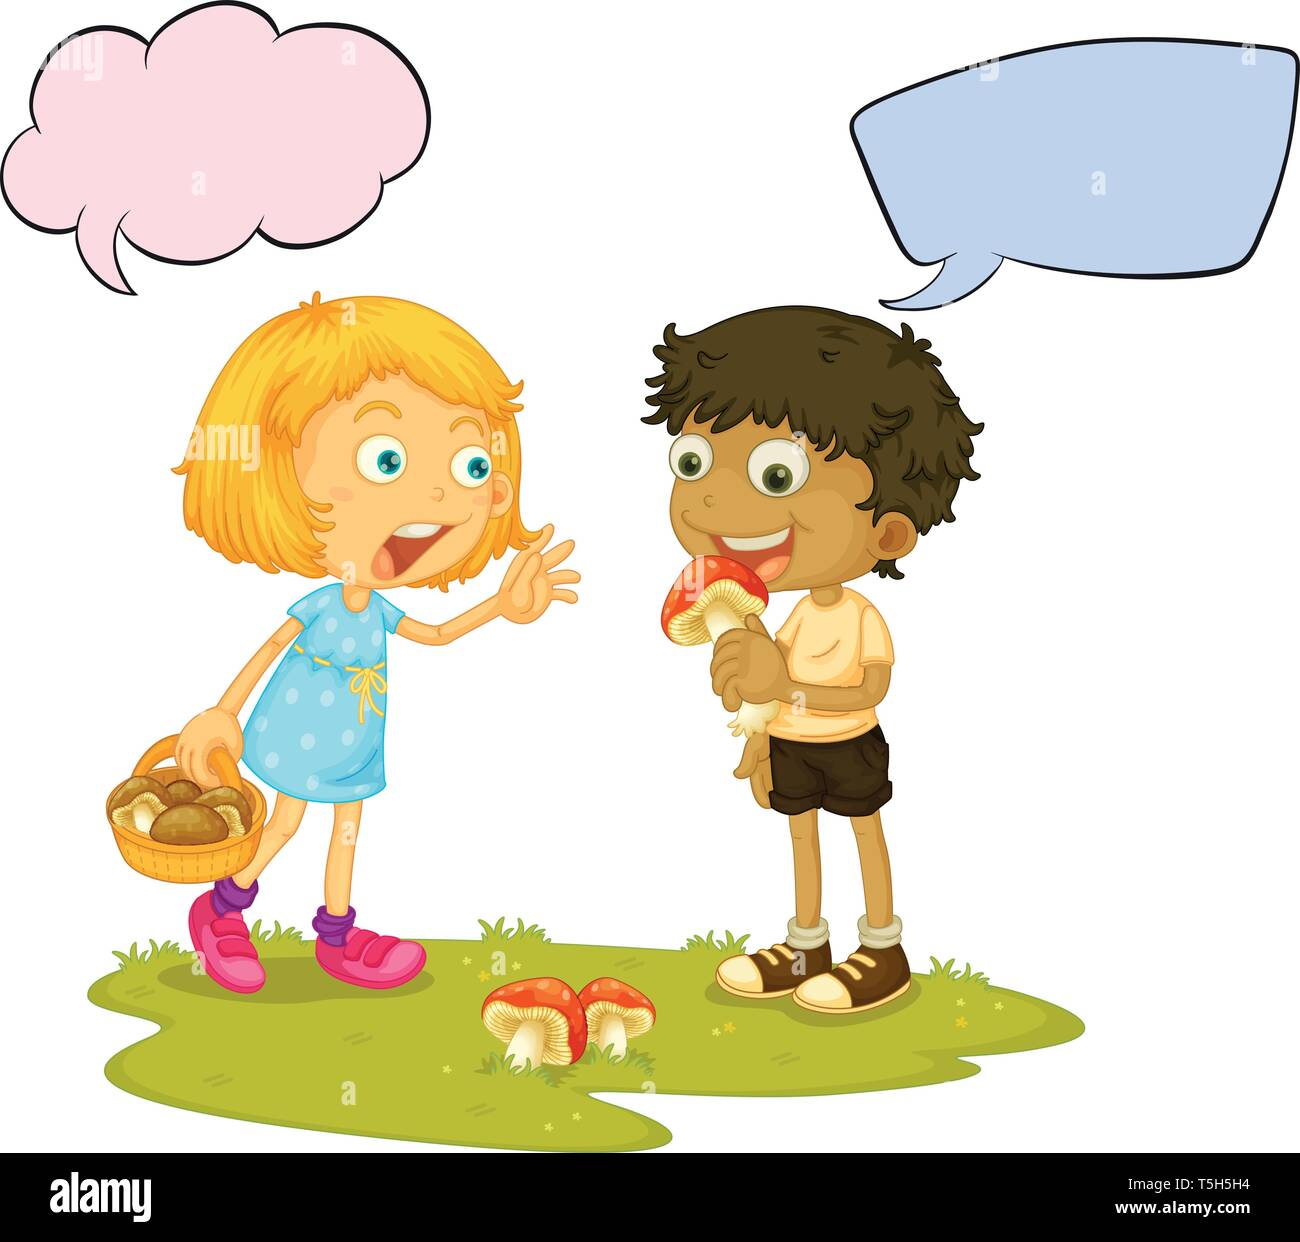 Boy eating mushroom speech balloon illustration - Stock Image